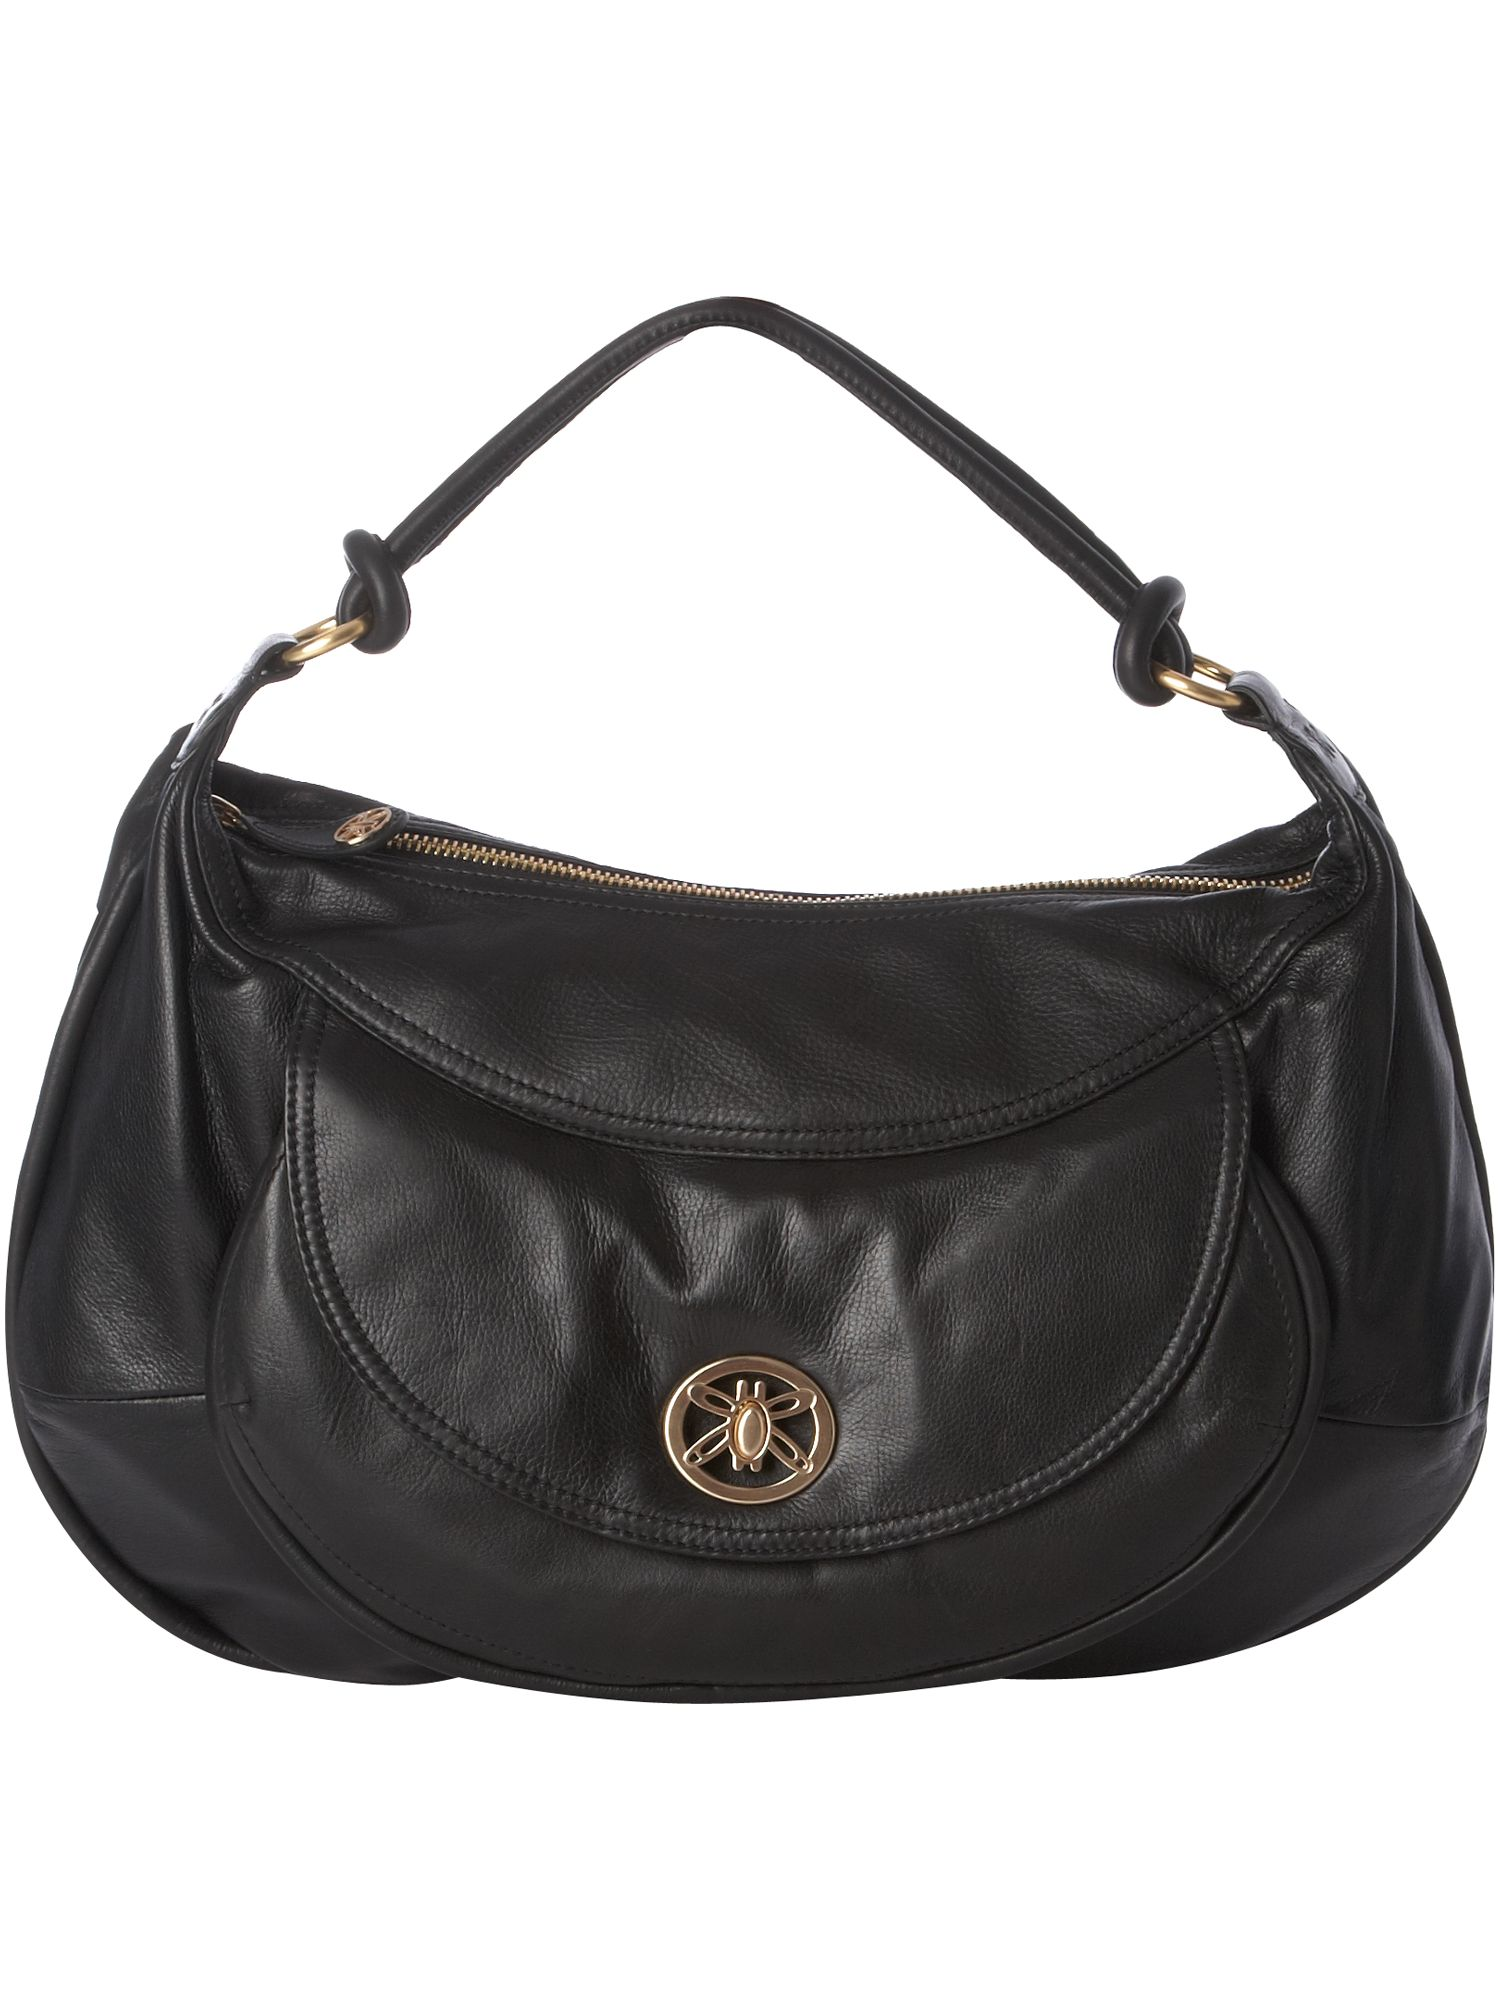 Ri2K Alpha large leather hobo bag product image